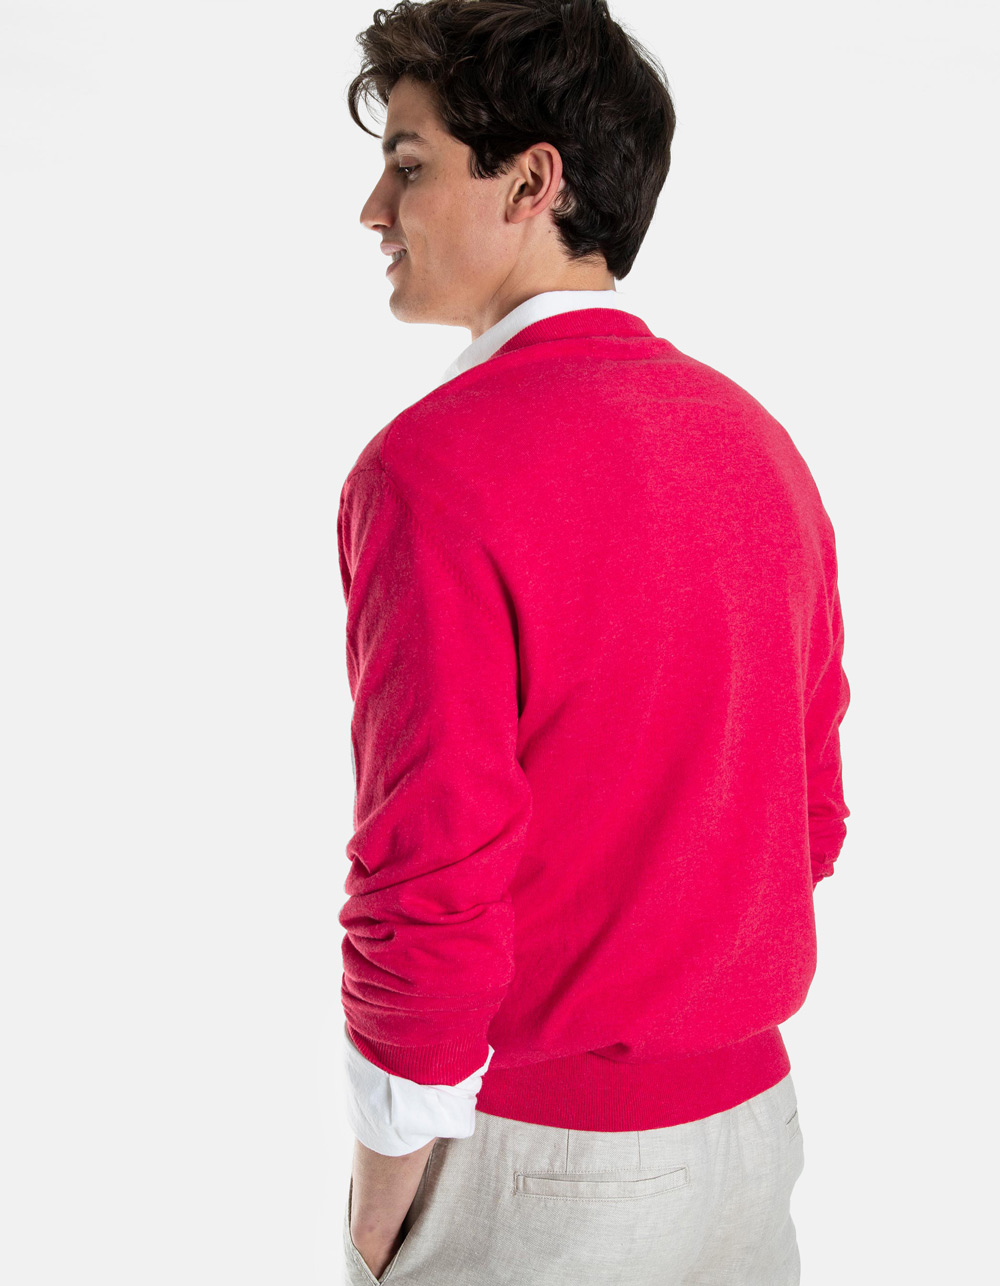 Coral BASIC v-neck sweater - Backside